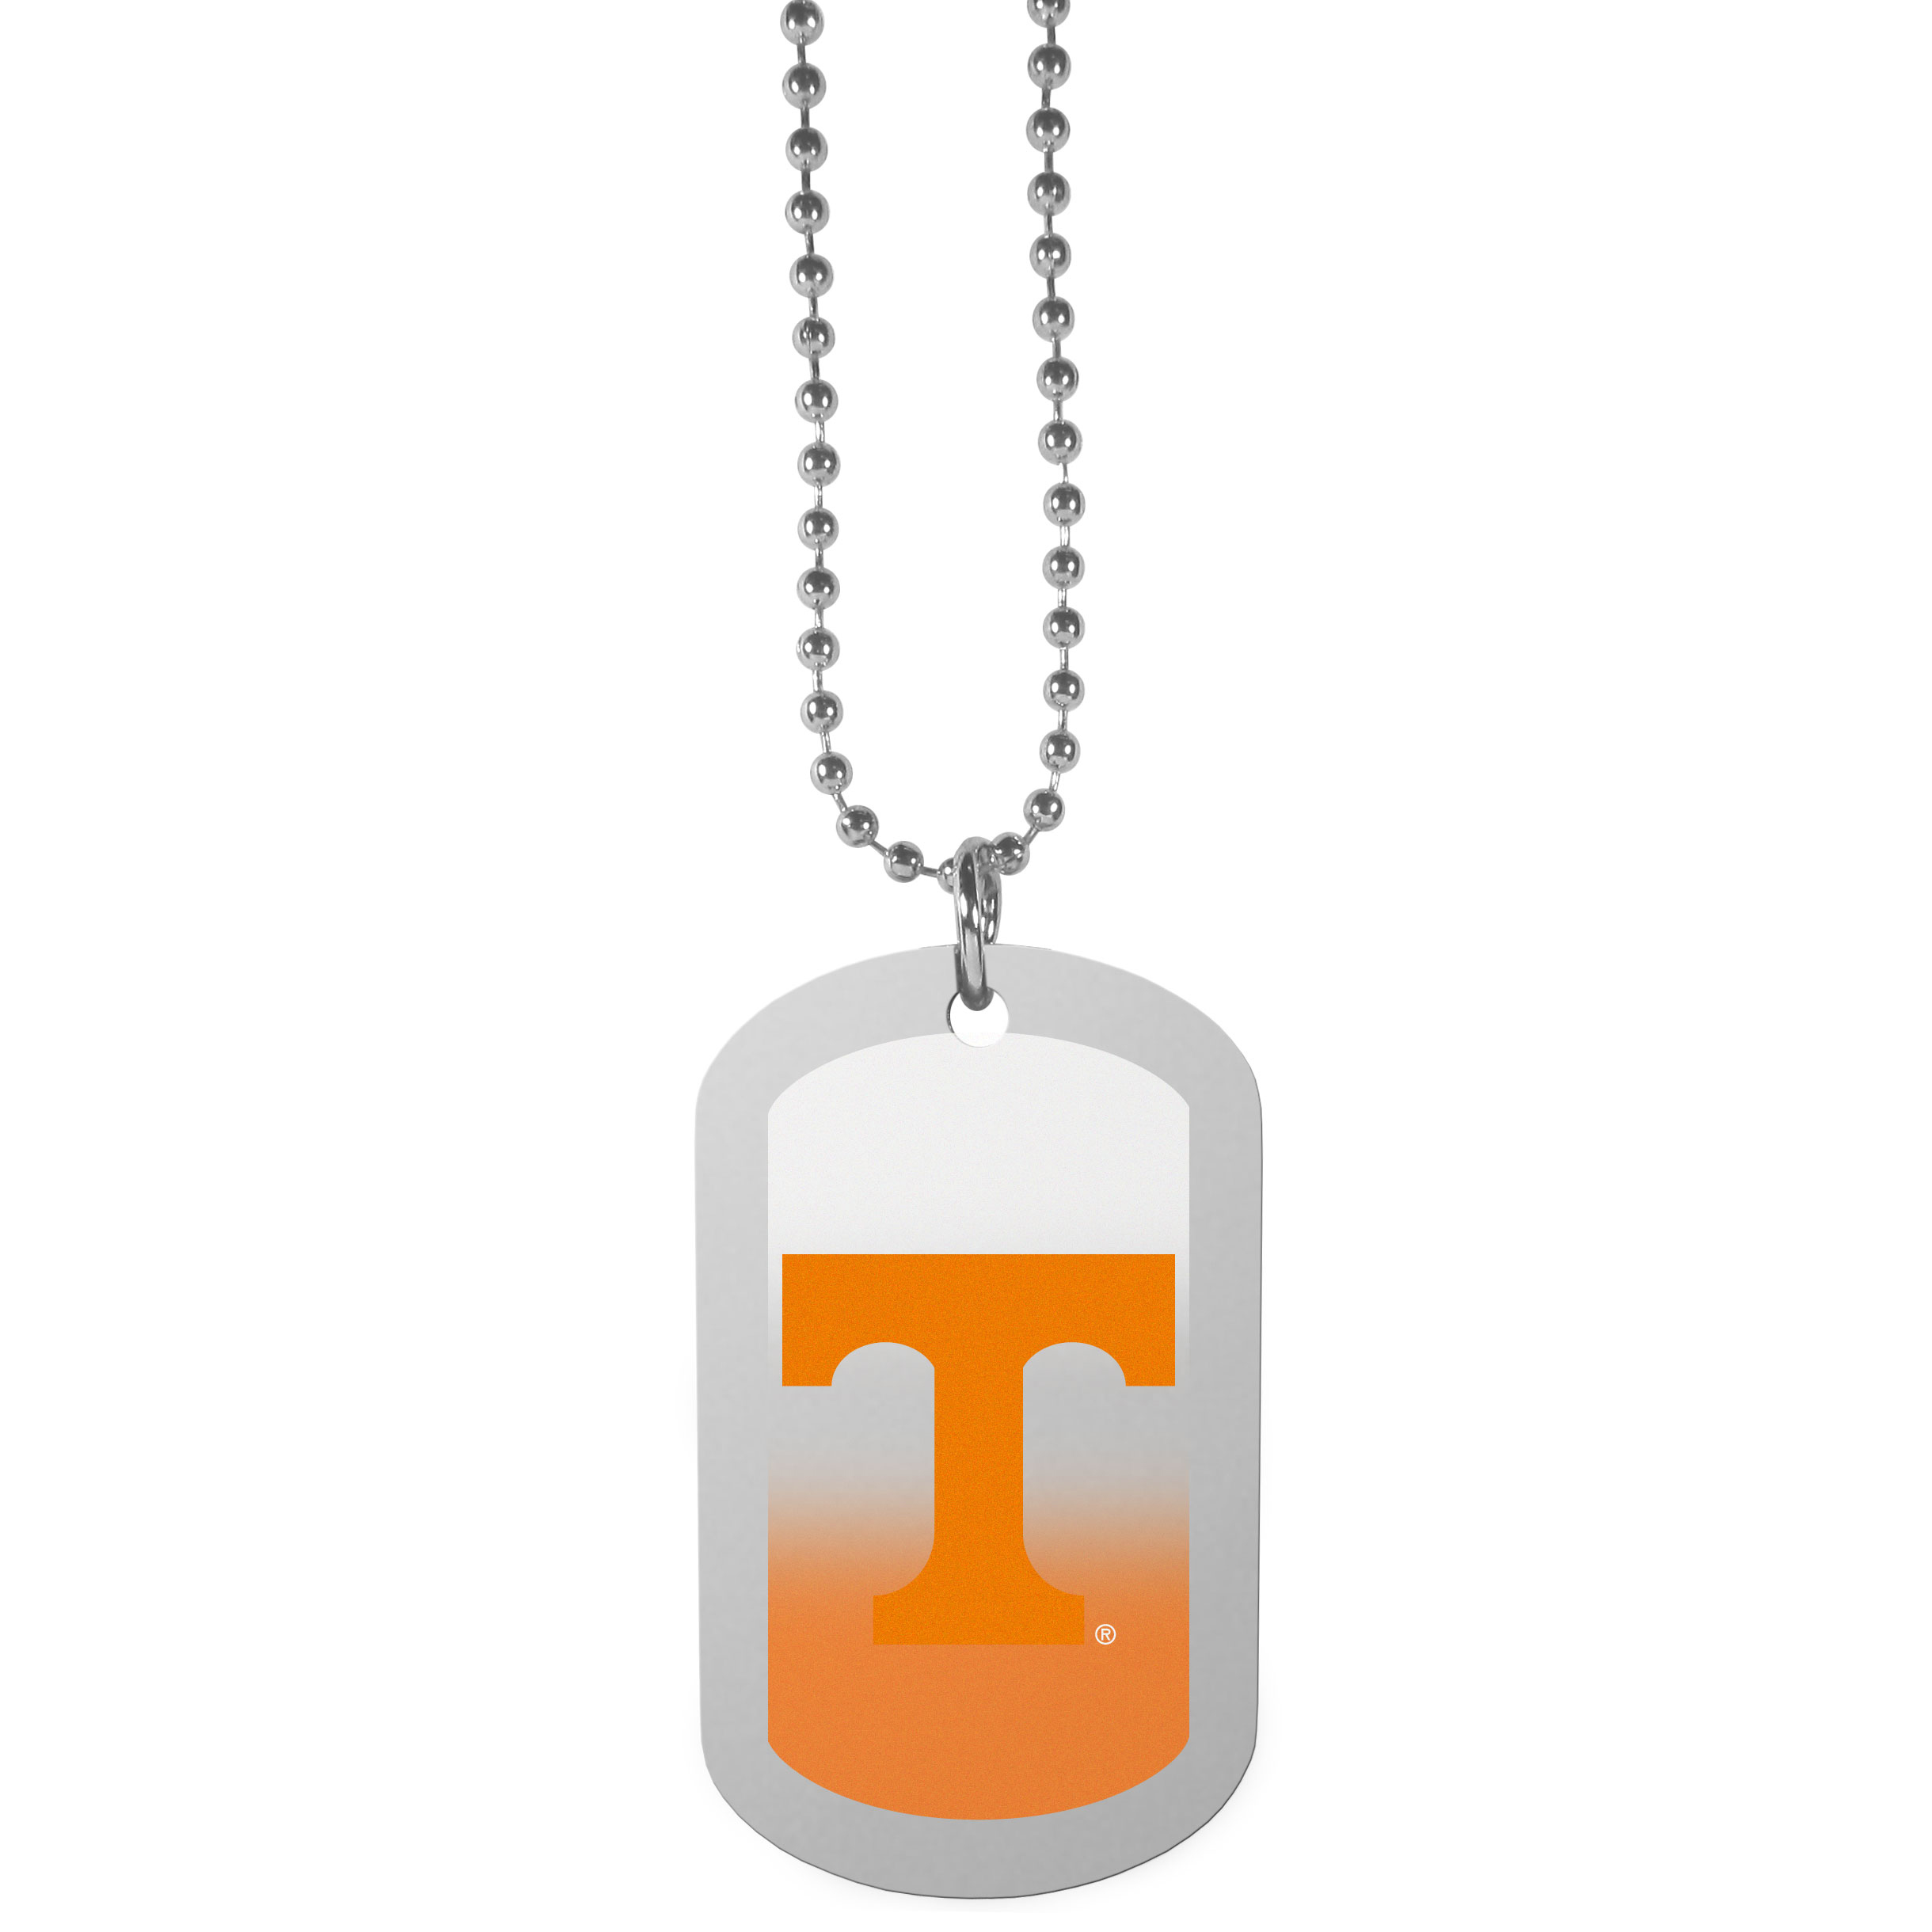 Tennessee Volunteers Team Tag Necklace - Dog tag necklaces are a fashion statement that is here to stay. The sporty version of the classic tag features a gradient print in team colors featuring a full color team logo over a high polish tag to create a bold and sporty look. The tag comes on a 26 inch ball chain with a ball and joint clasp. Any Tennessee Volunteers would be proud to wear this attractive fashion accessory.